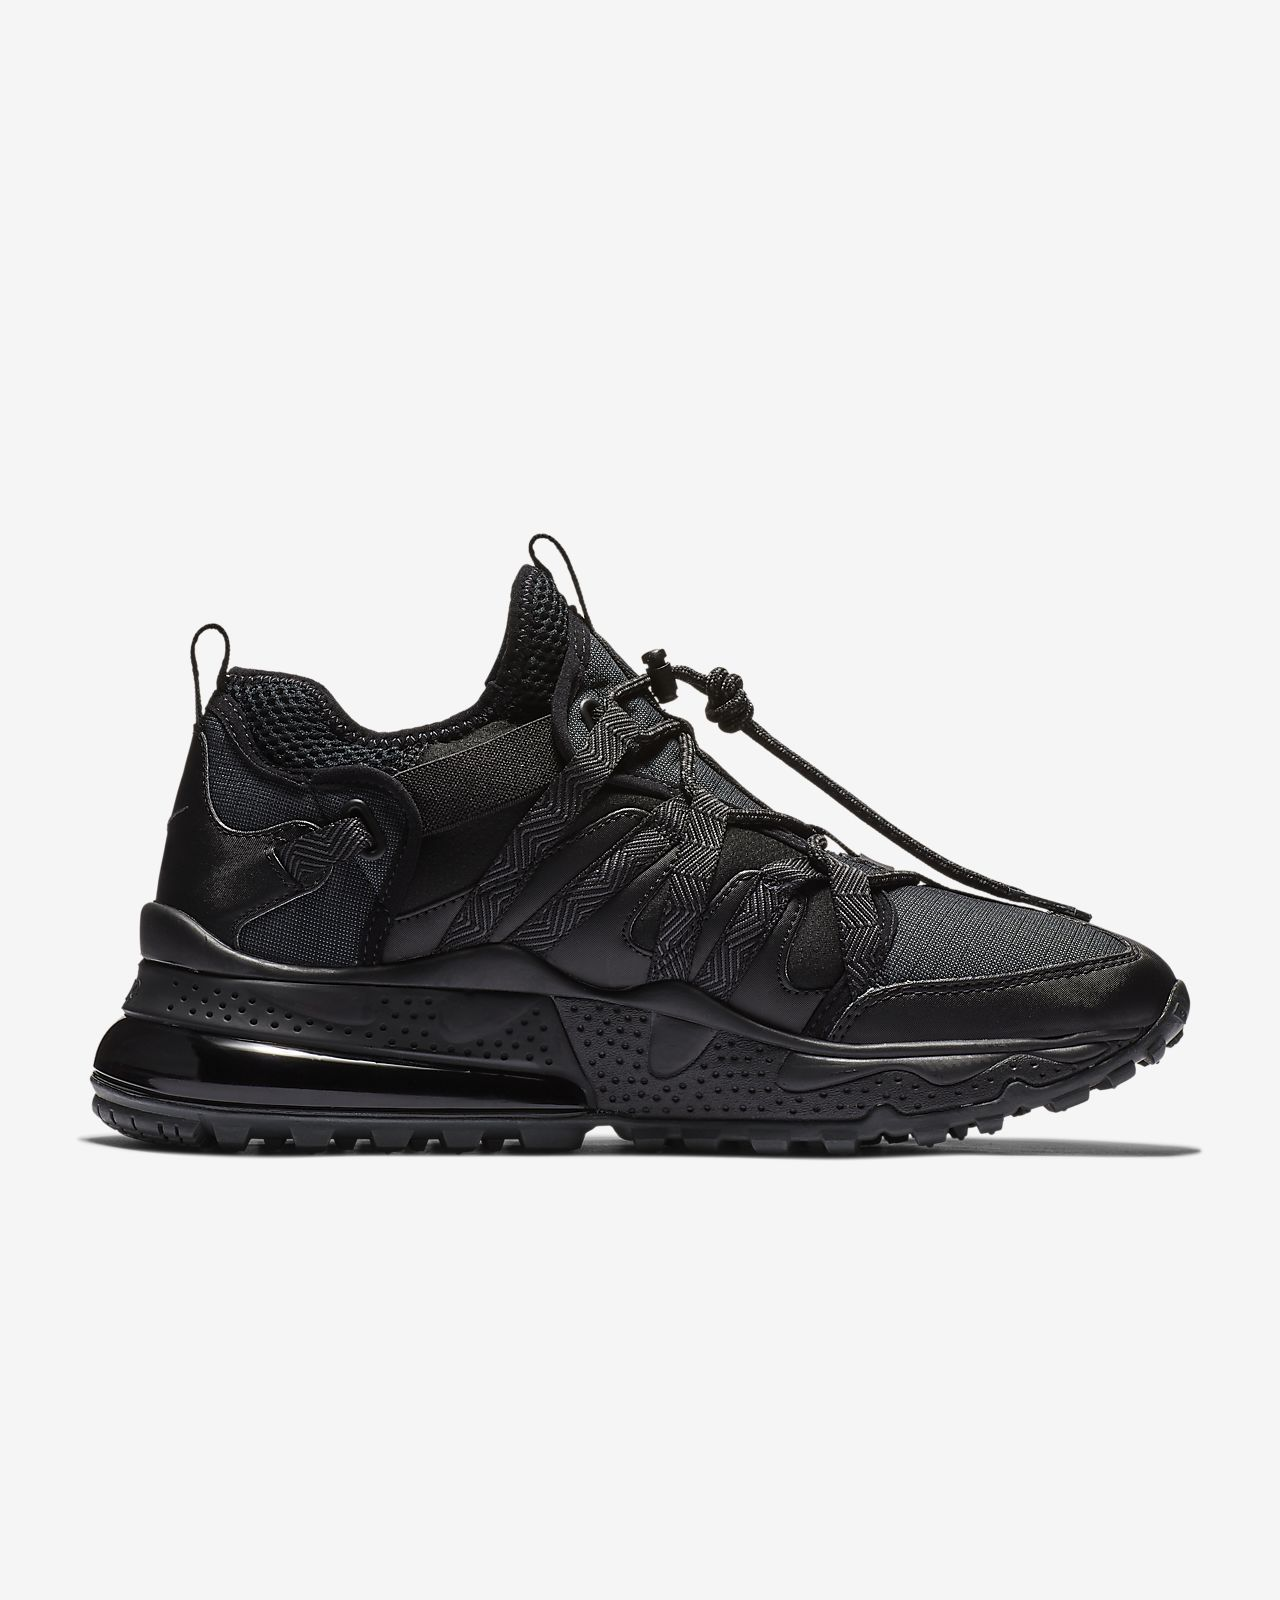 meet 3e2ce 0d31d ... Nike Air Max 270 Bowfin Men s Shoe